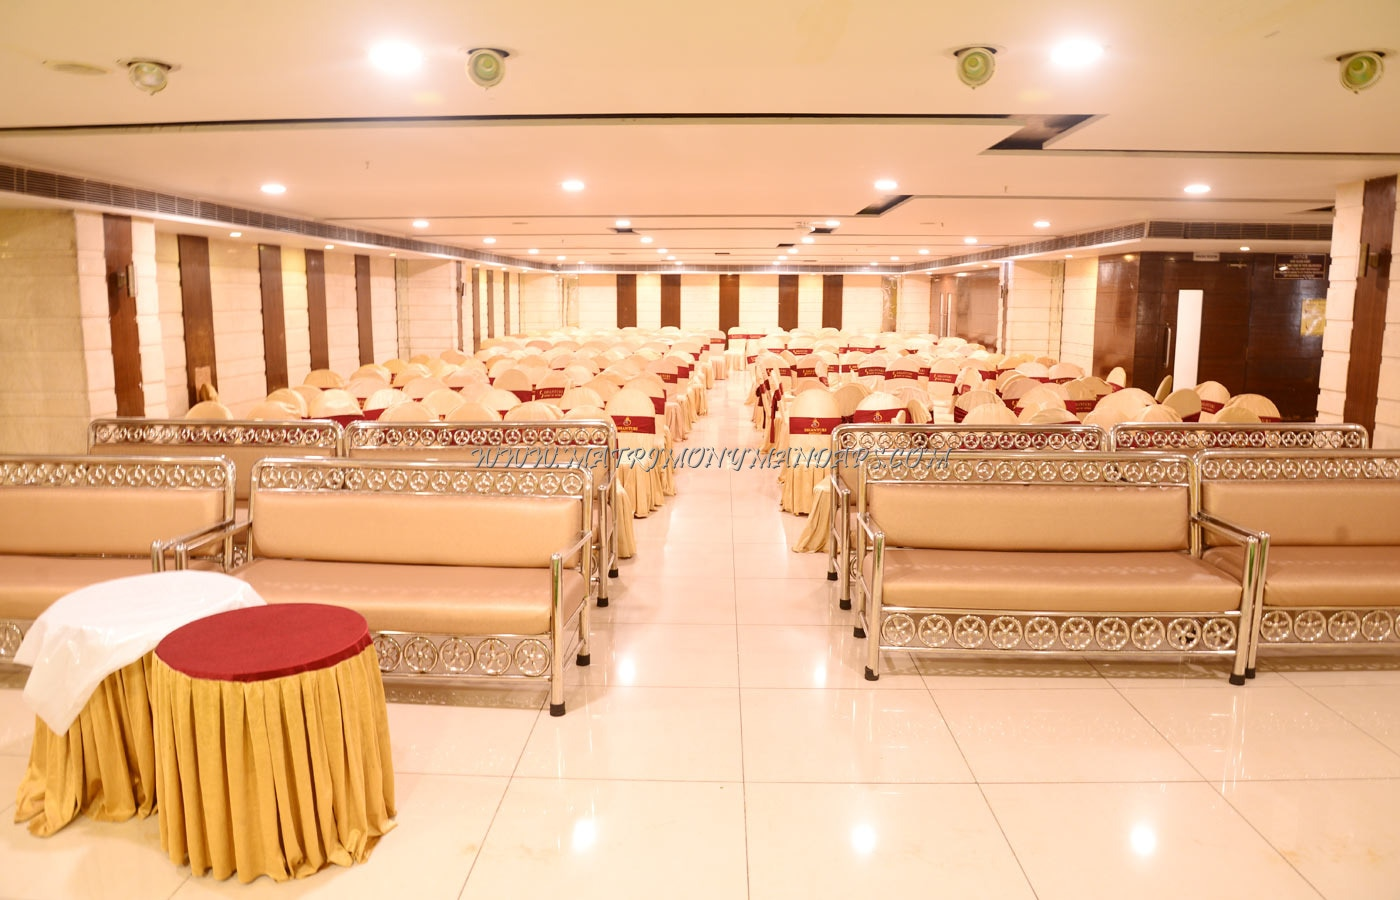 Find the availability of the Hotel Sitara Grand - Galaxy Hall (A/C) in LB Nagar, Hyderabad and avail special offers